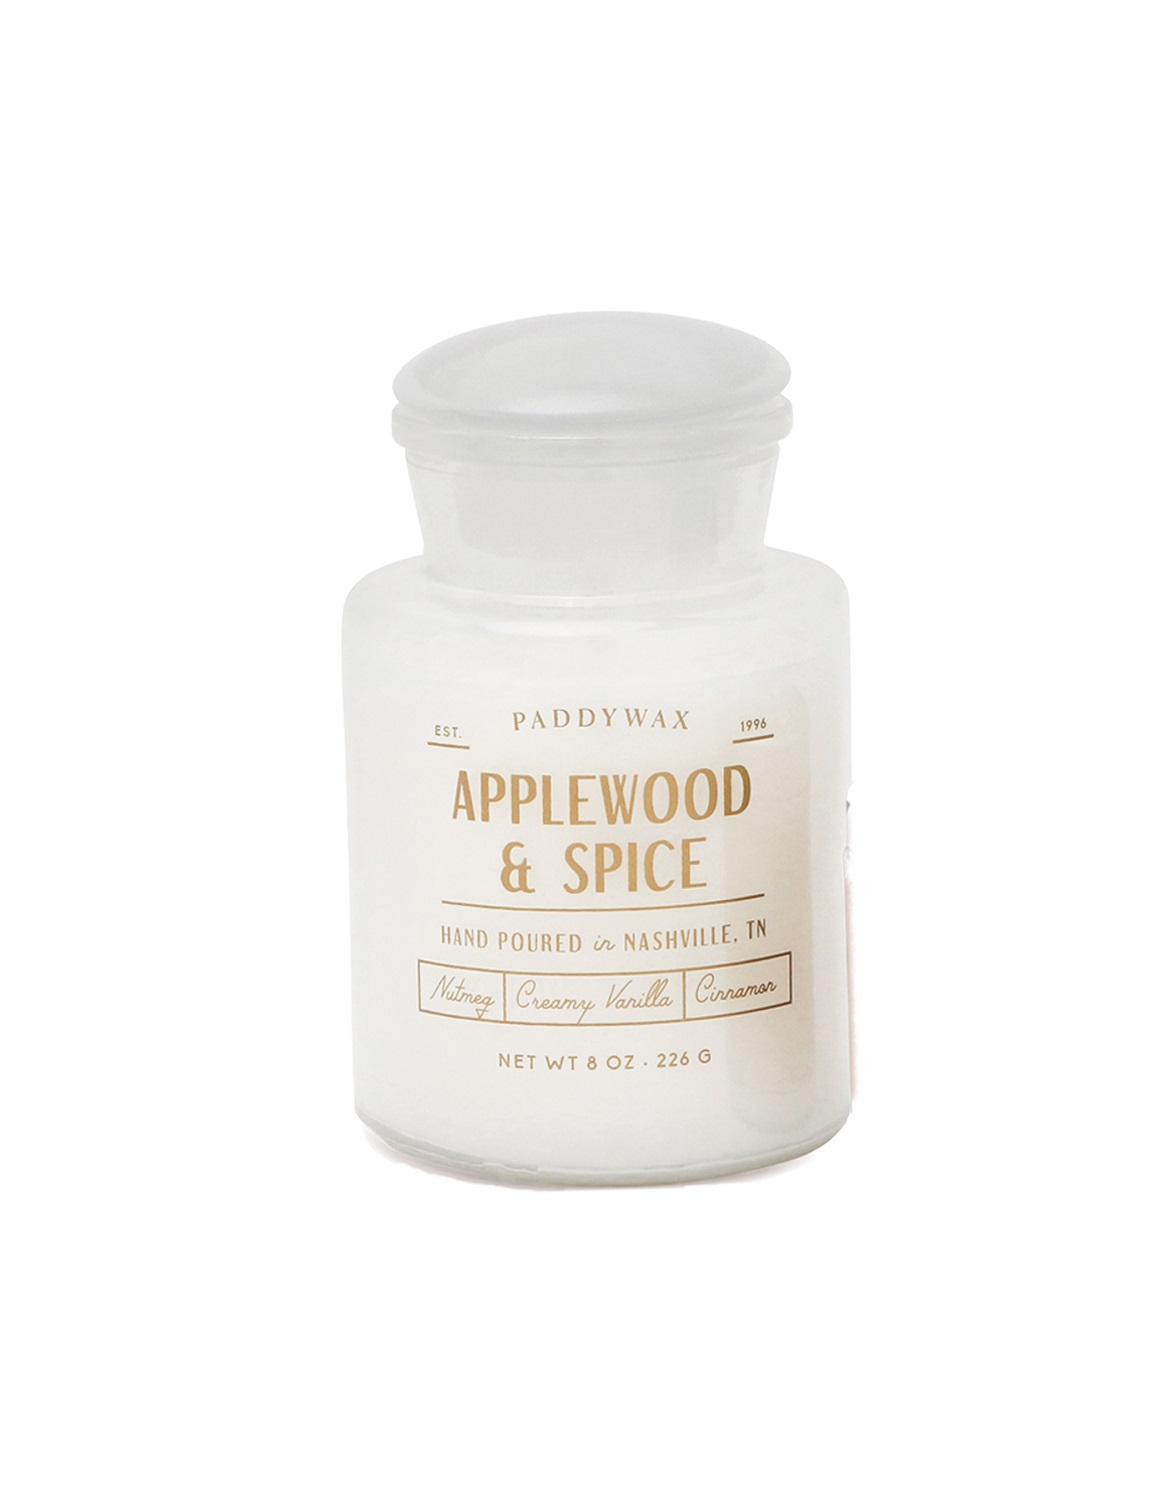 Applewood & Spice - Paddywax Farmhouse - Soy Candle - 8 oz